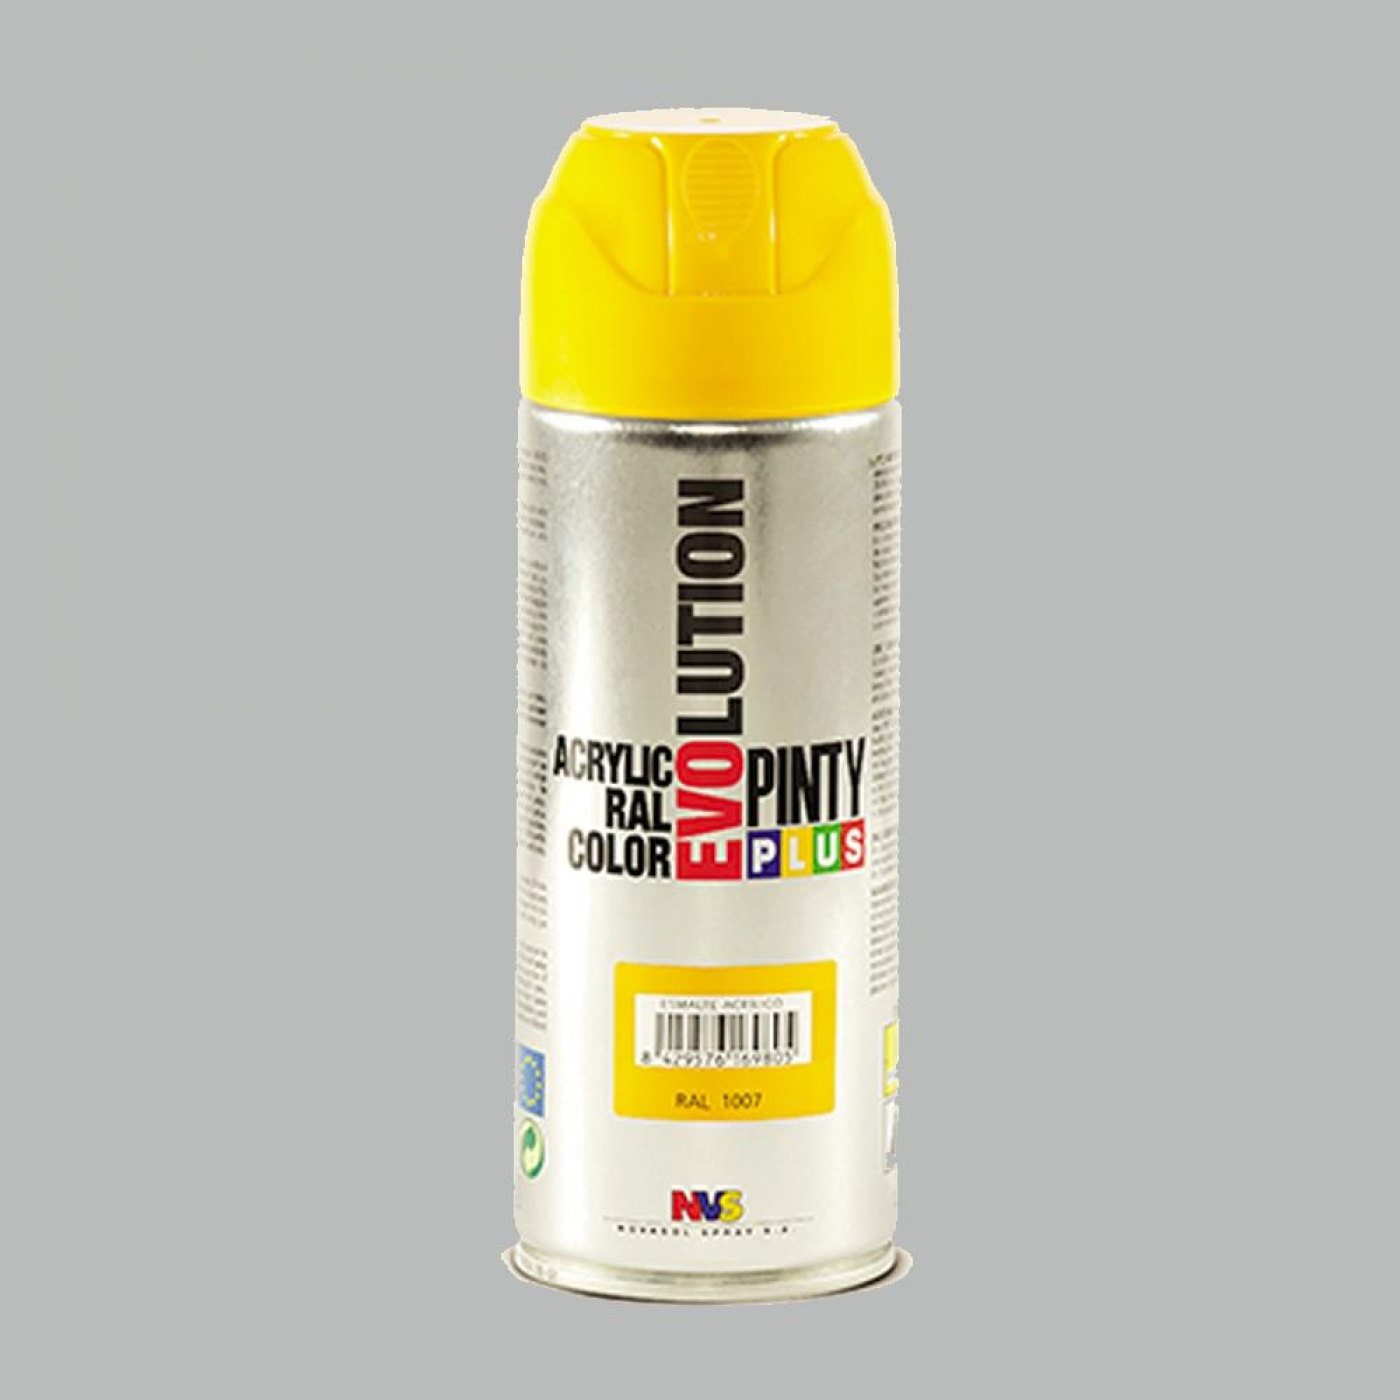 Pintura en Spray Evolution Plata Purpurina, 400 ml por 4 ...